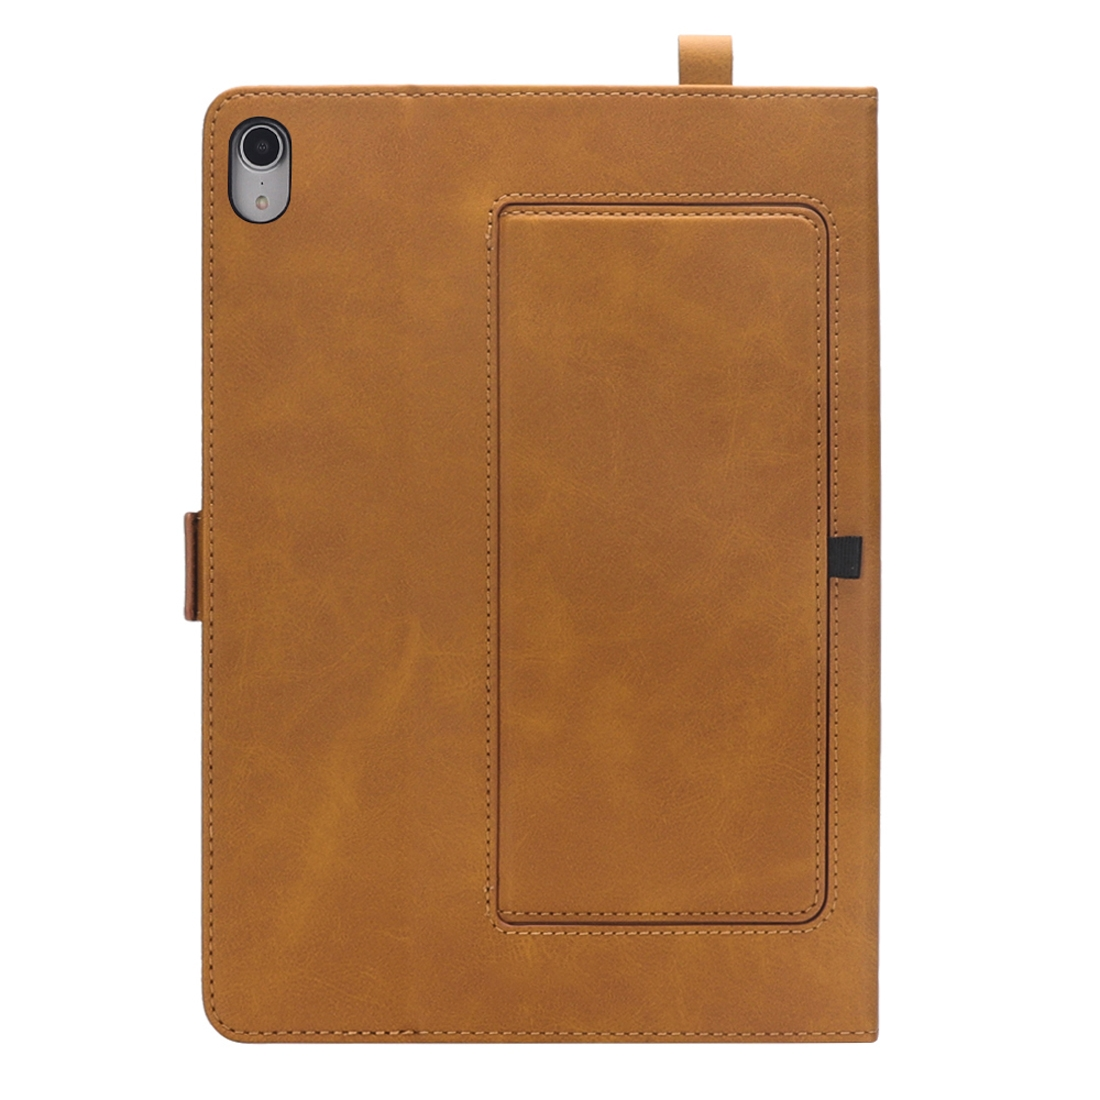 Bi-Stand Leather iPad Pro 12.9 Case (2018), w/Sleeves, Frame, Pen Holder (Light Brown)